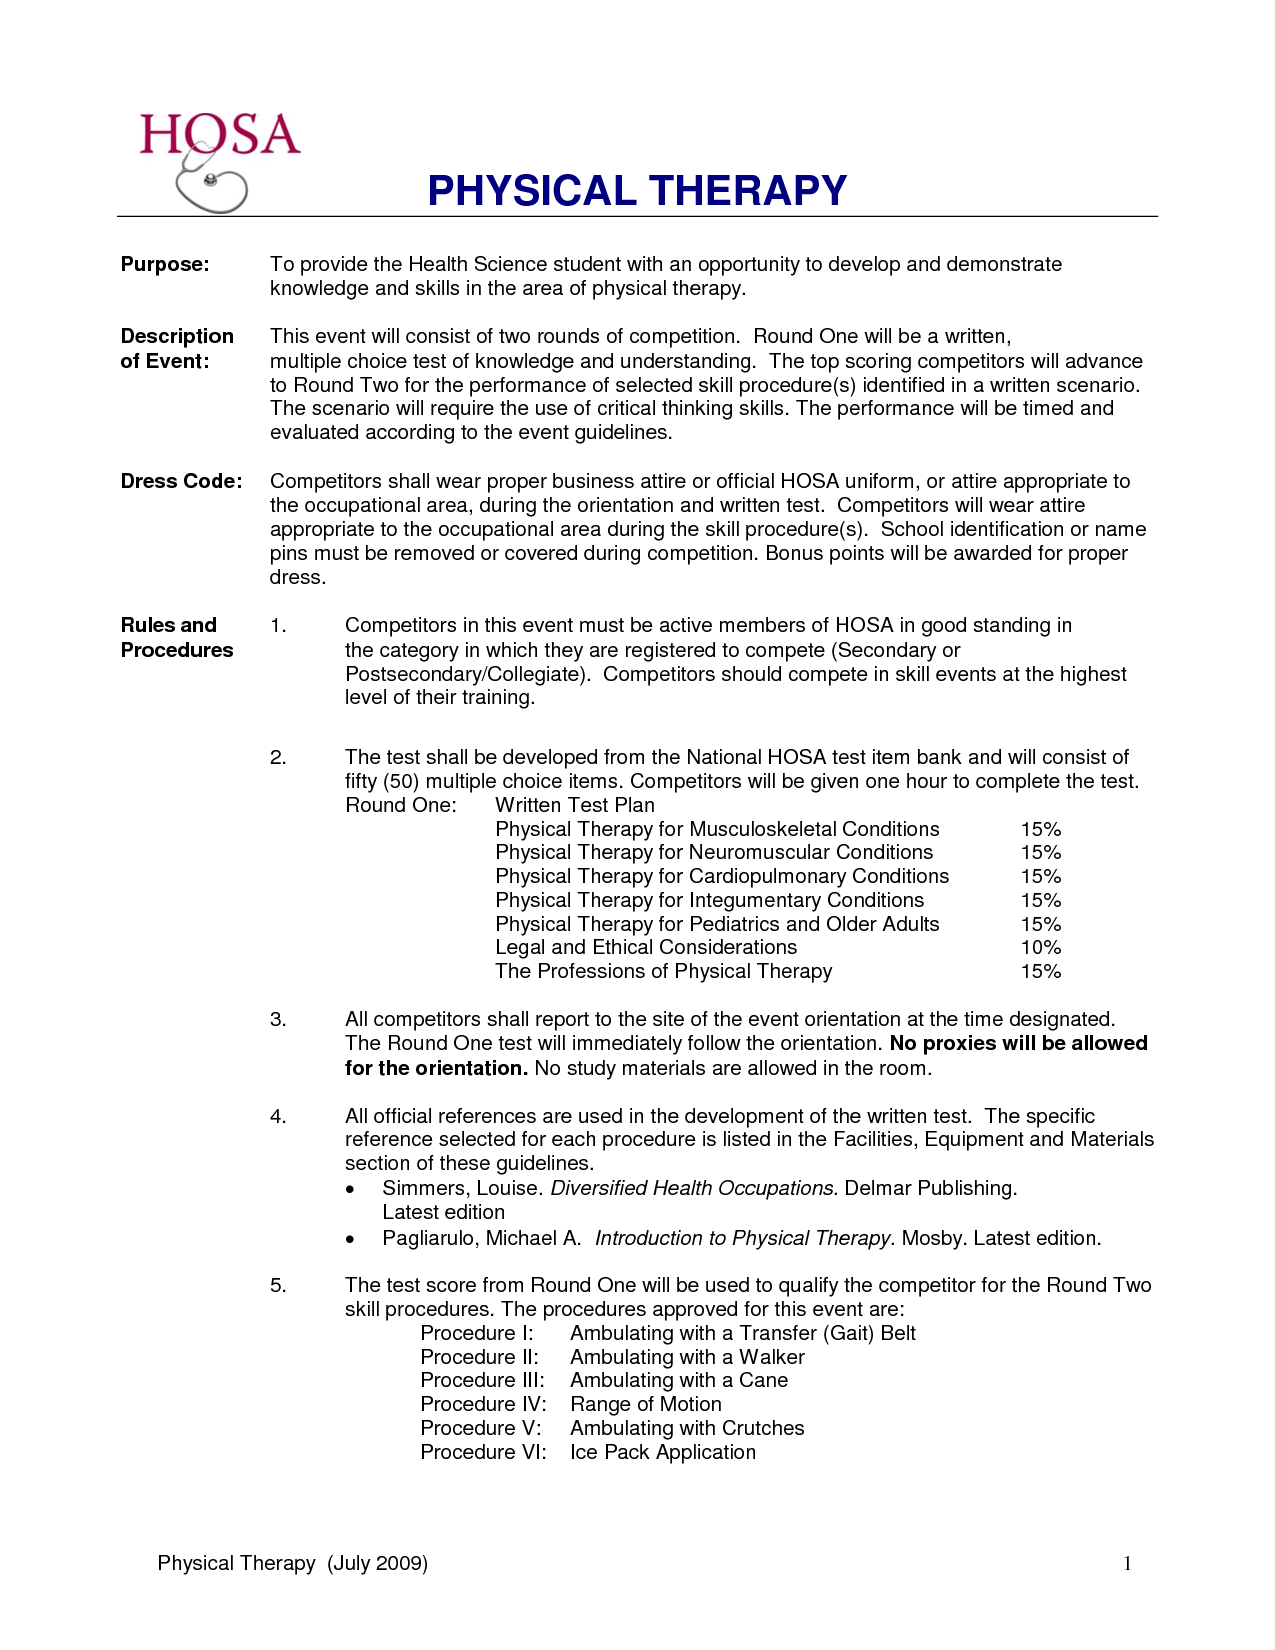 cover letter physical therapy aide resume with purpose and ...